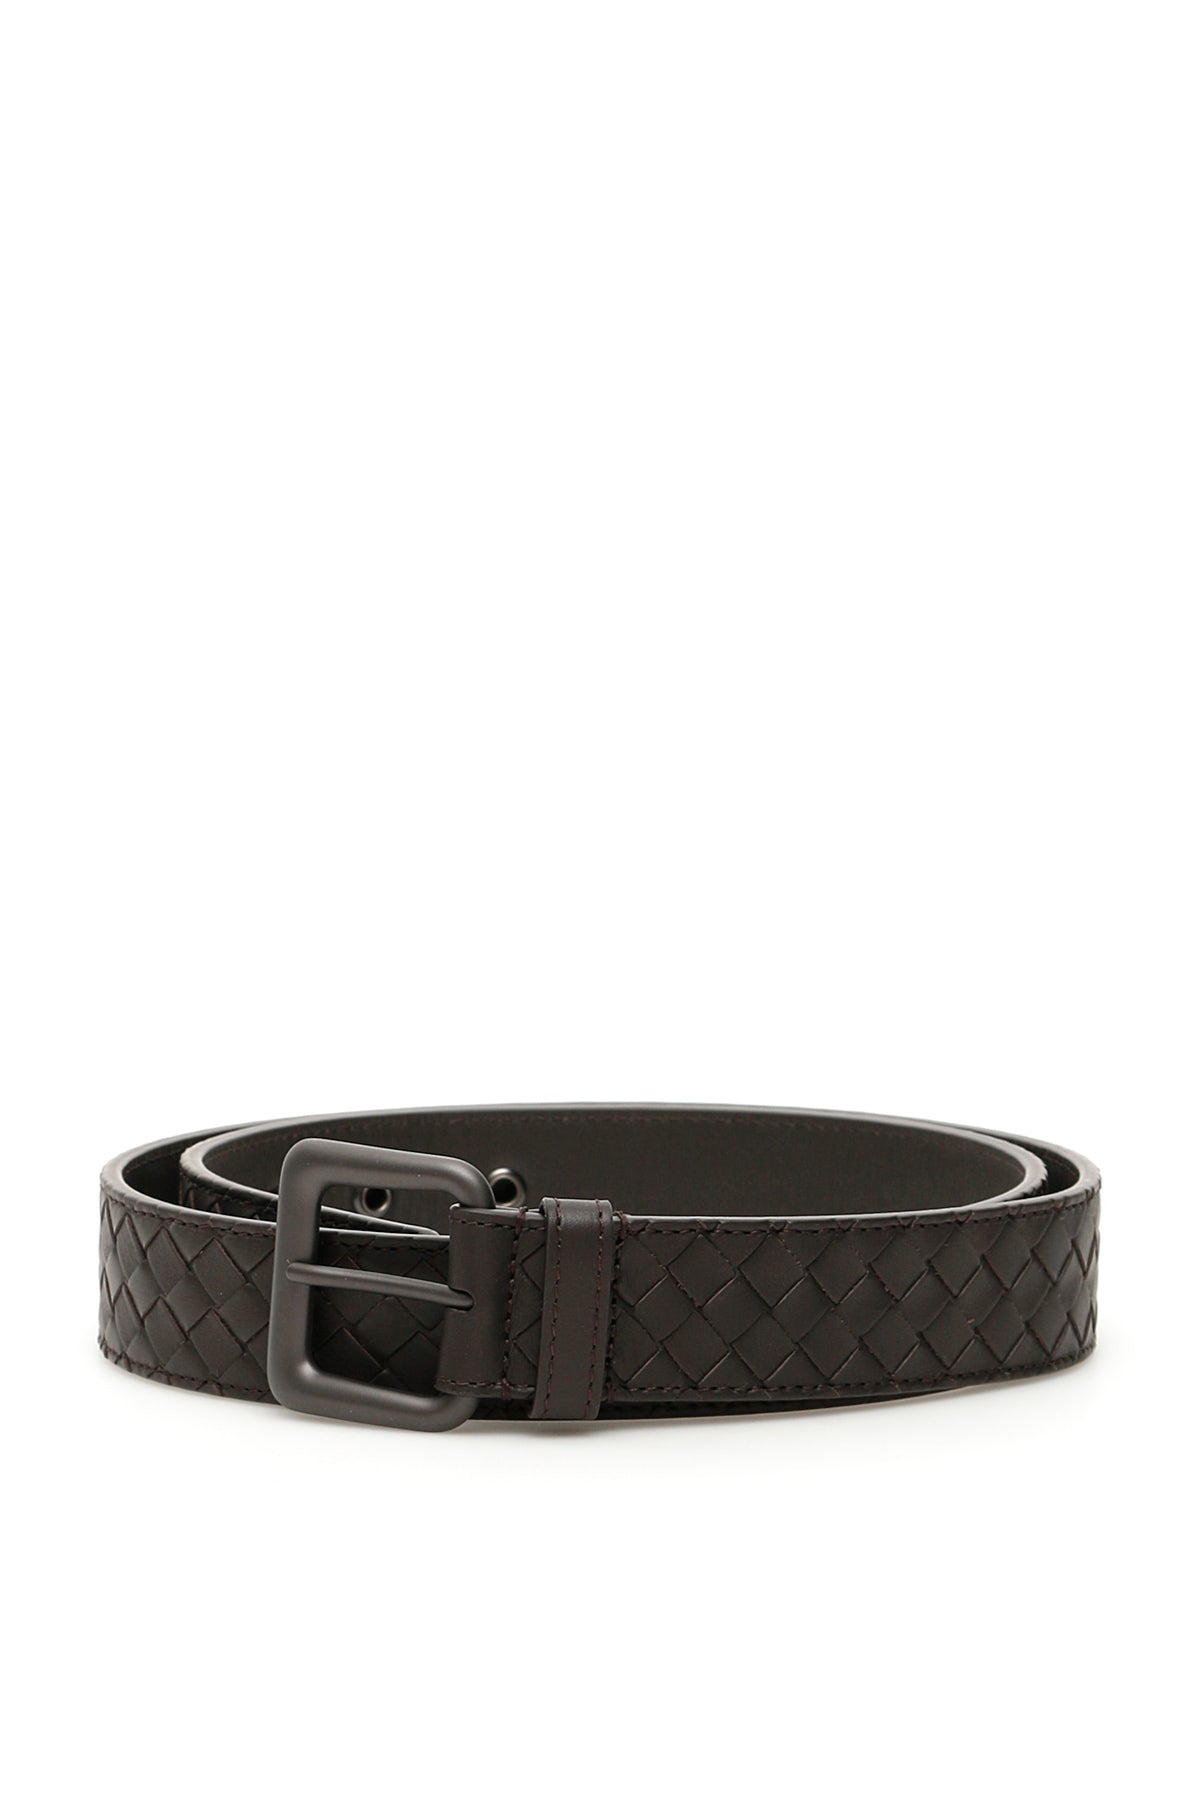 Bottega Veneta Belts BOTTEGA VENETA WOVEN BUCKLE BELT